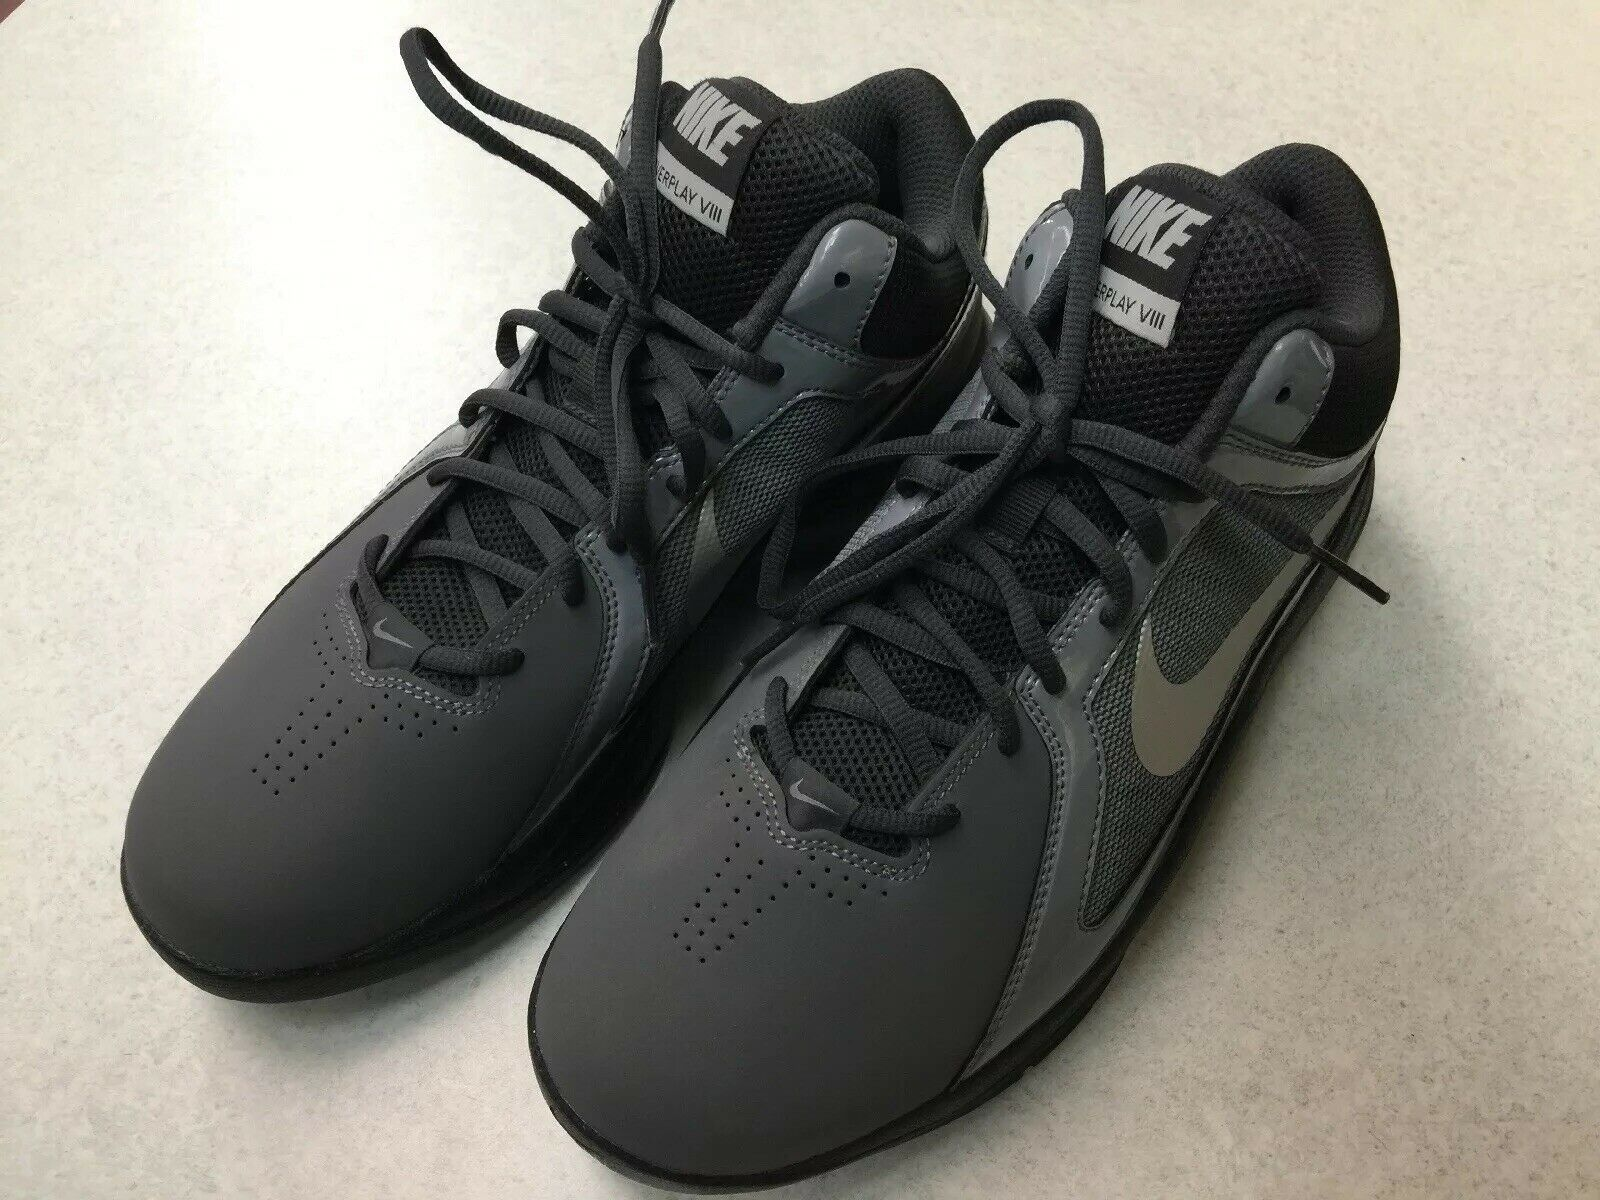 Nike Men's Air Max Overplay shoes 643168-003 Gry Blk Anth Mtlc Slvr Sz 8.5